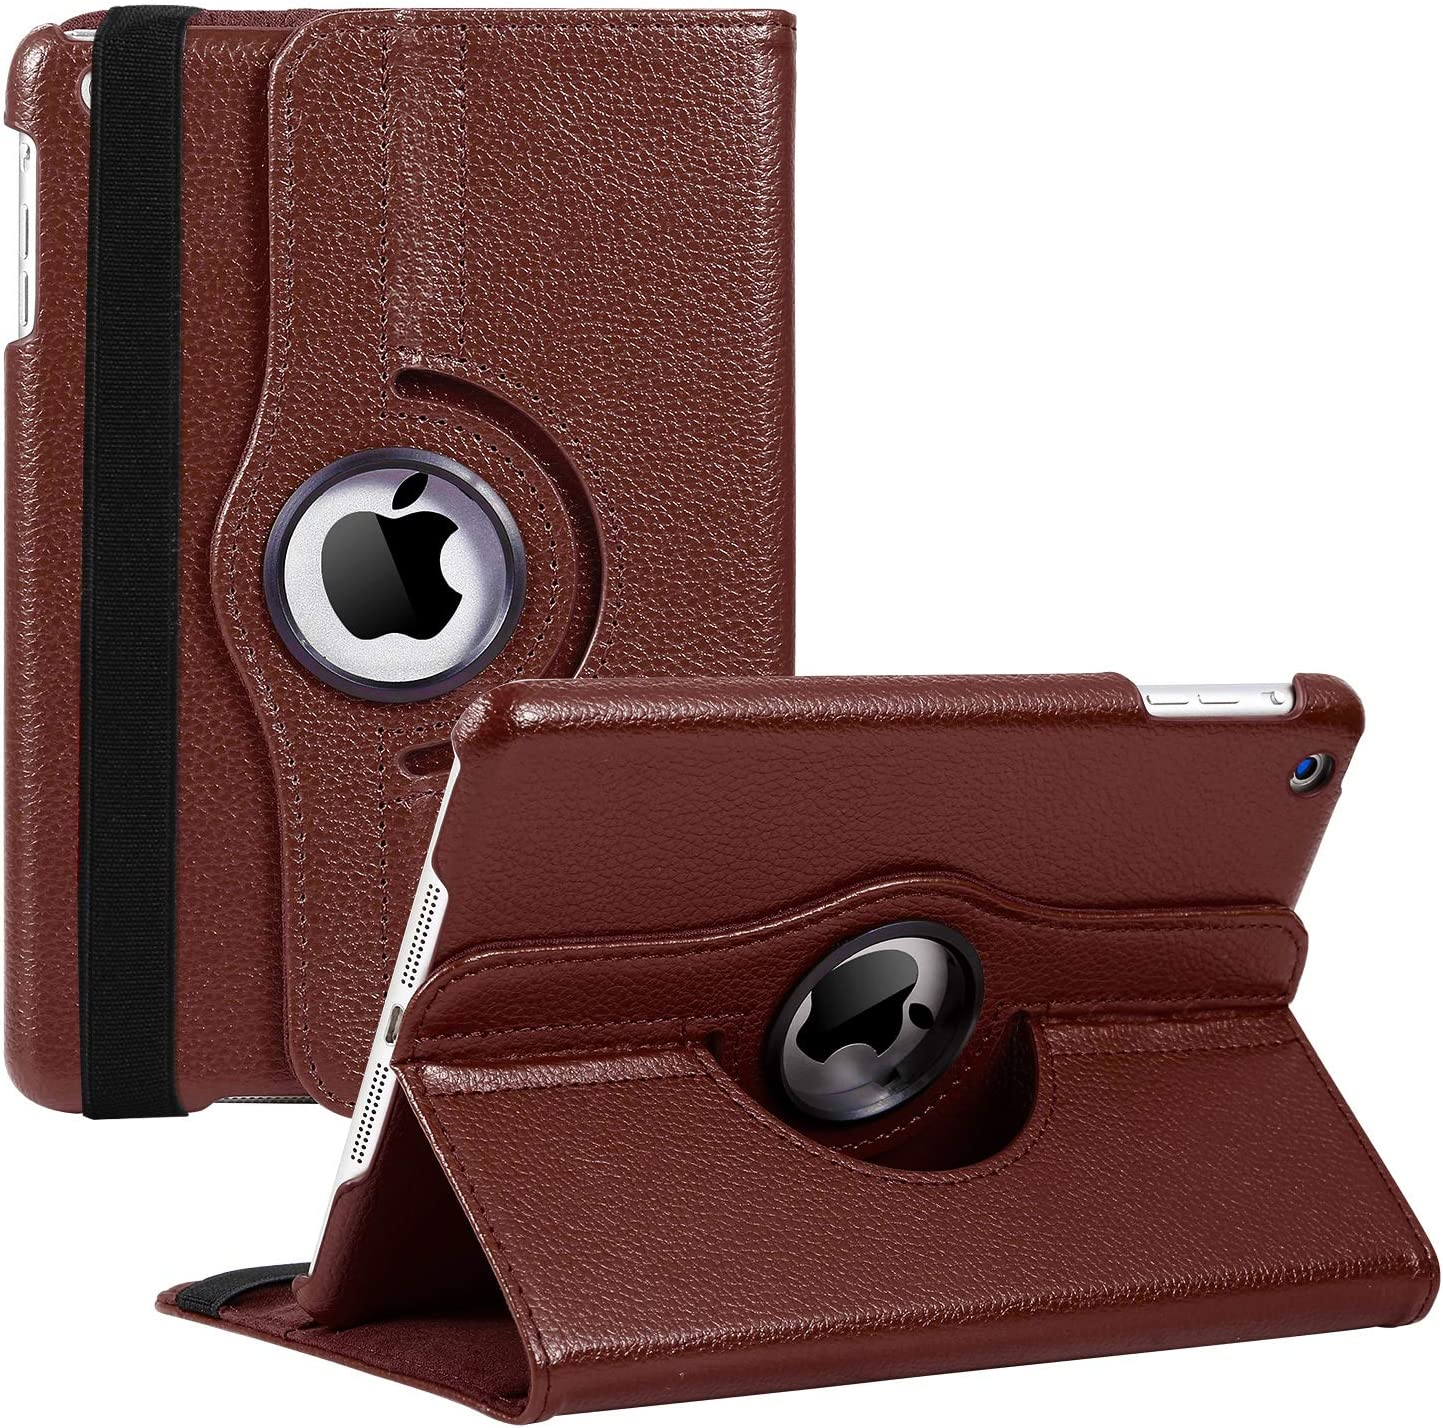 iPad Mini 1/2/3 Case - 360 Degree Rotating Stand Smart Cover Case with Auto Sleep/Wake Feature for Apple iPad Mini 1 / iPad Mini 2 / iPad Mini 3 (Brown) …